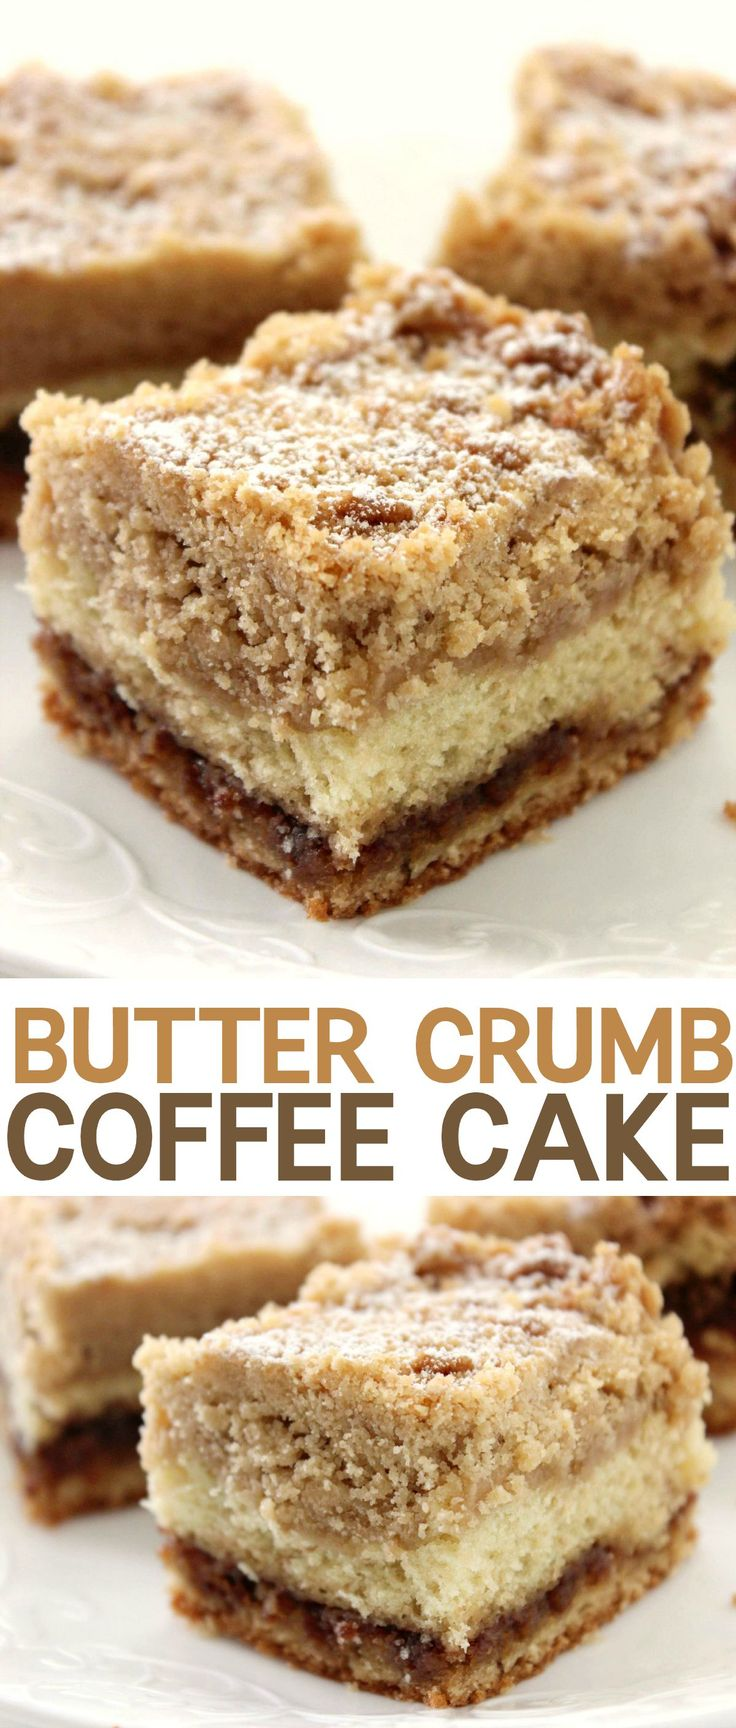 Kosher palate coffee cake recipe